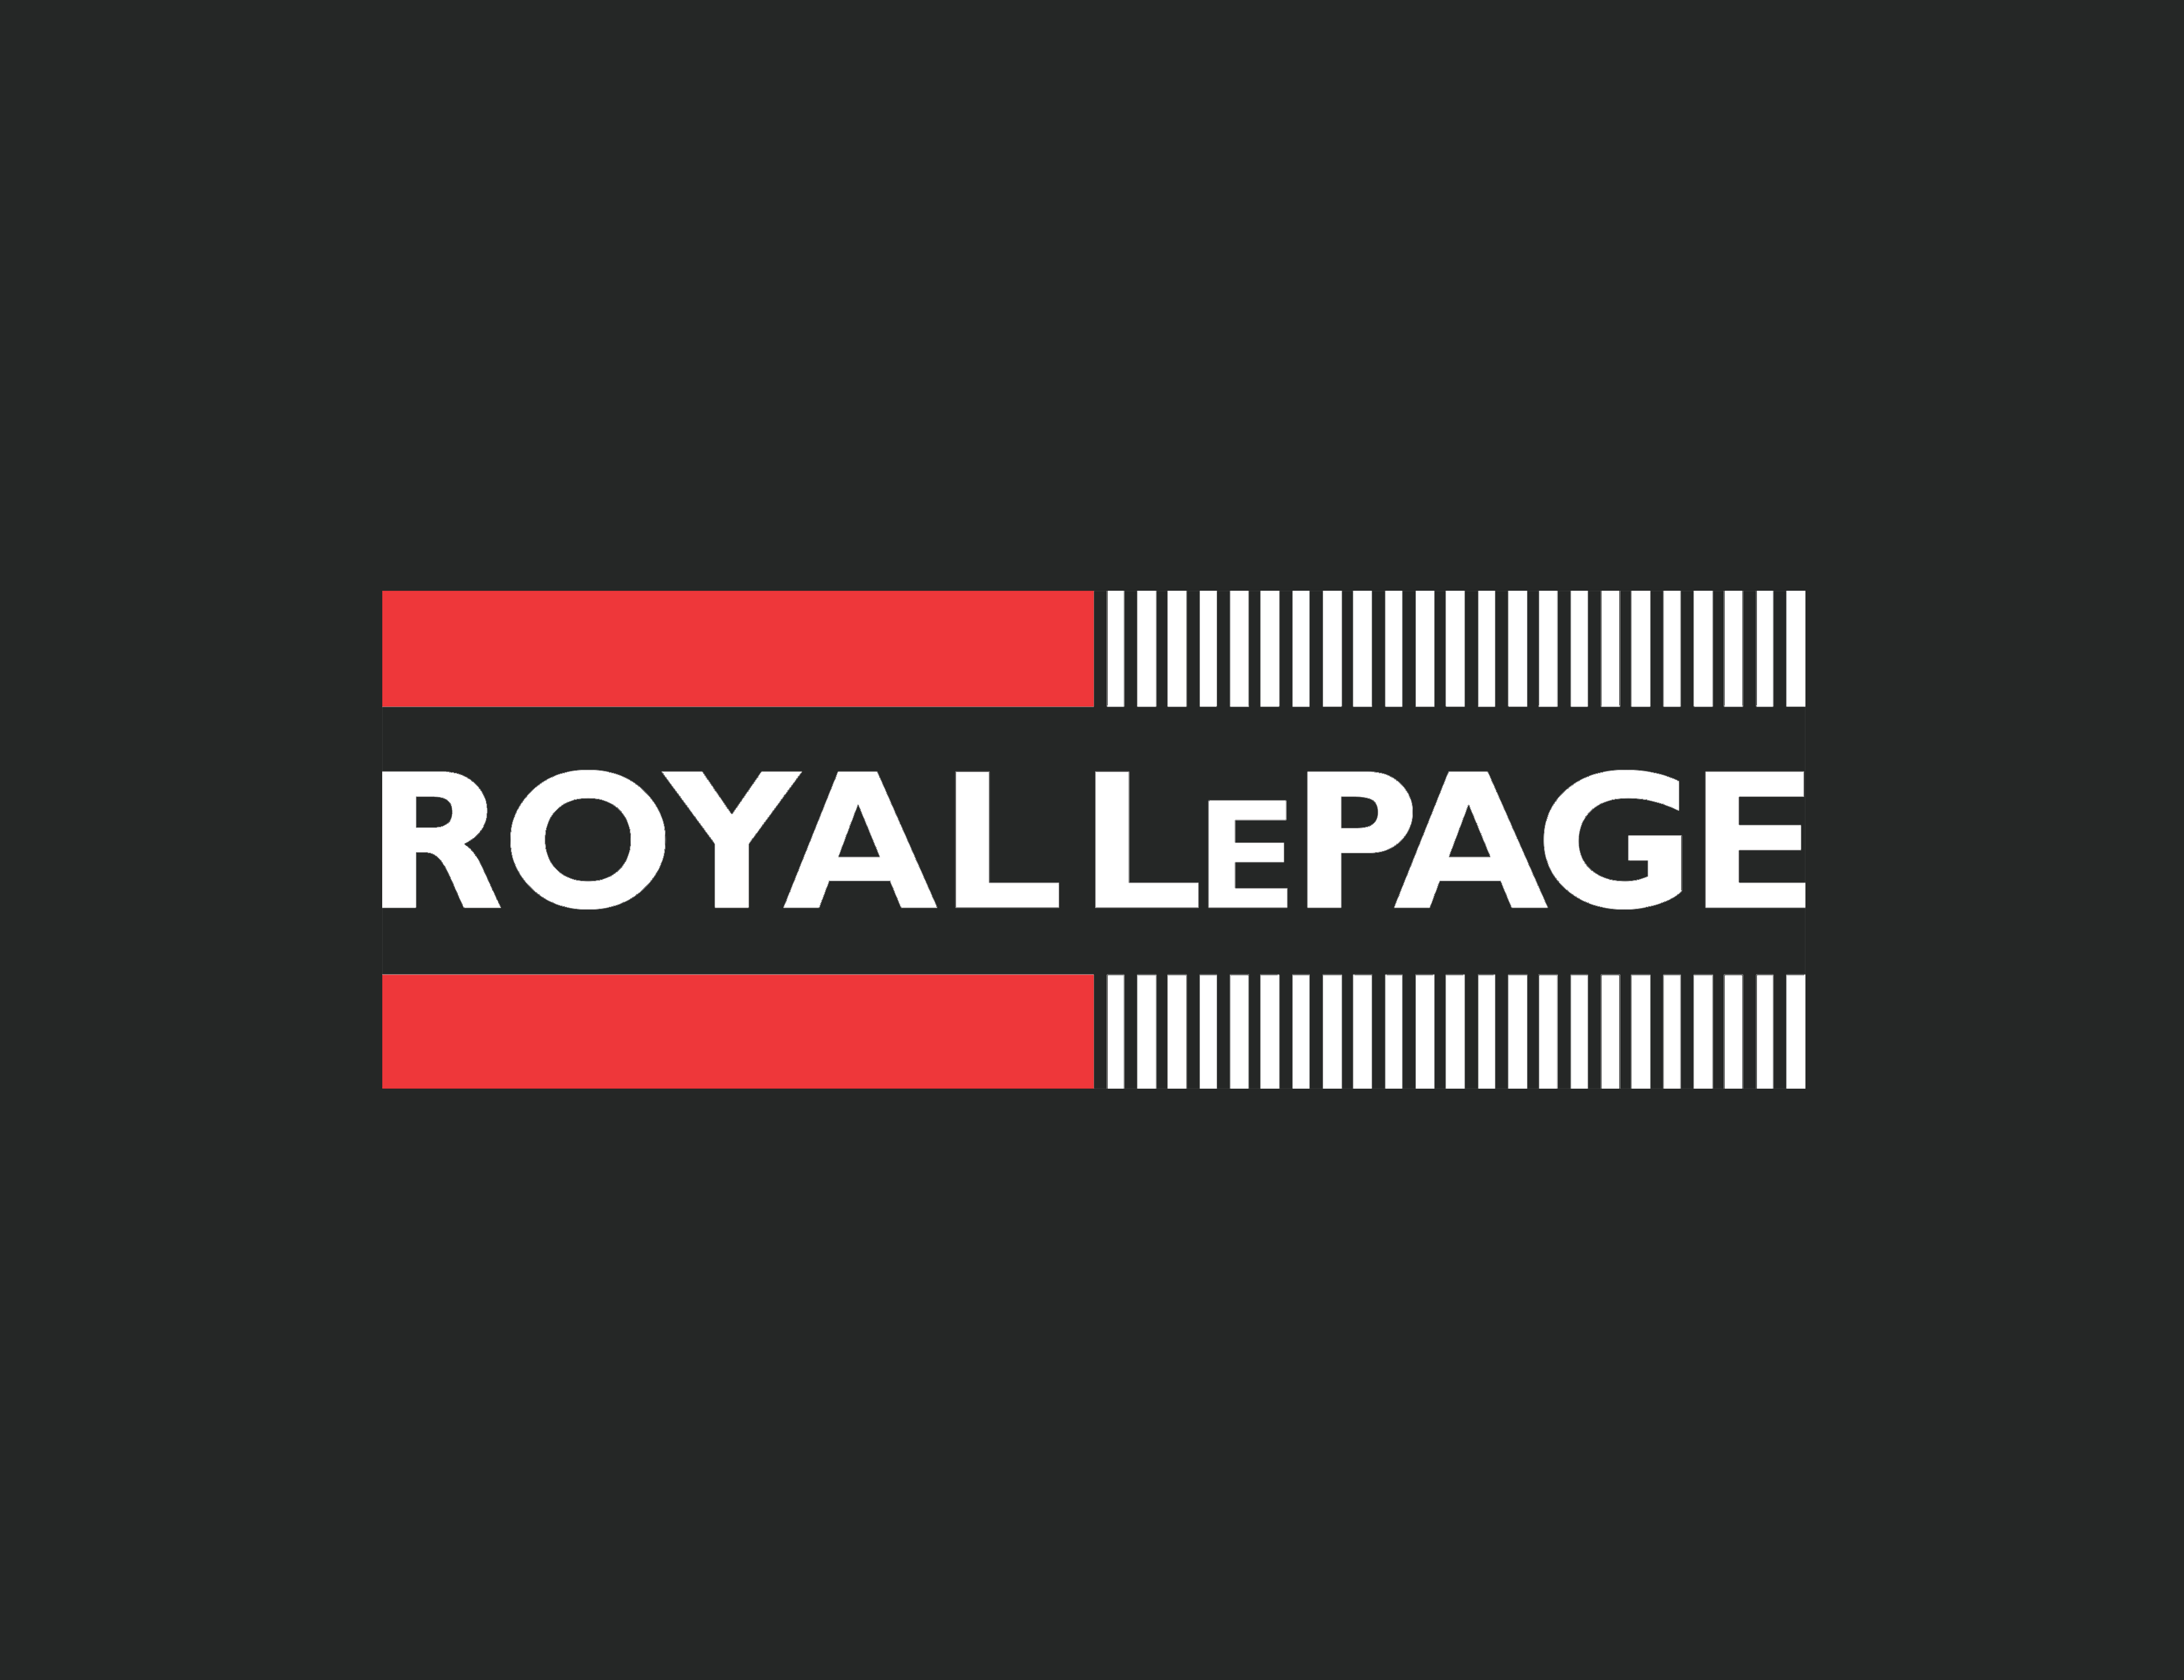 Royal lepage logo real estate logo inspiration logojoy royal lepage logo real estate company lines no symbol black background launching a business reheart Images